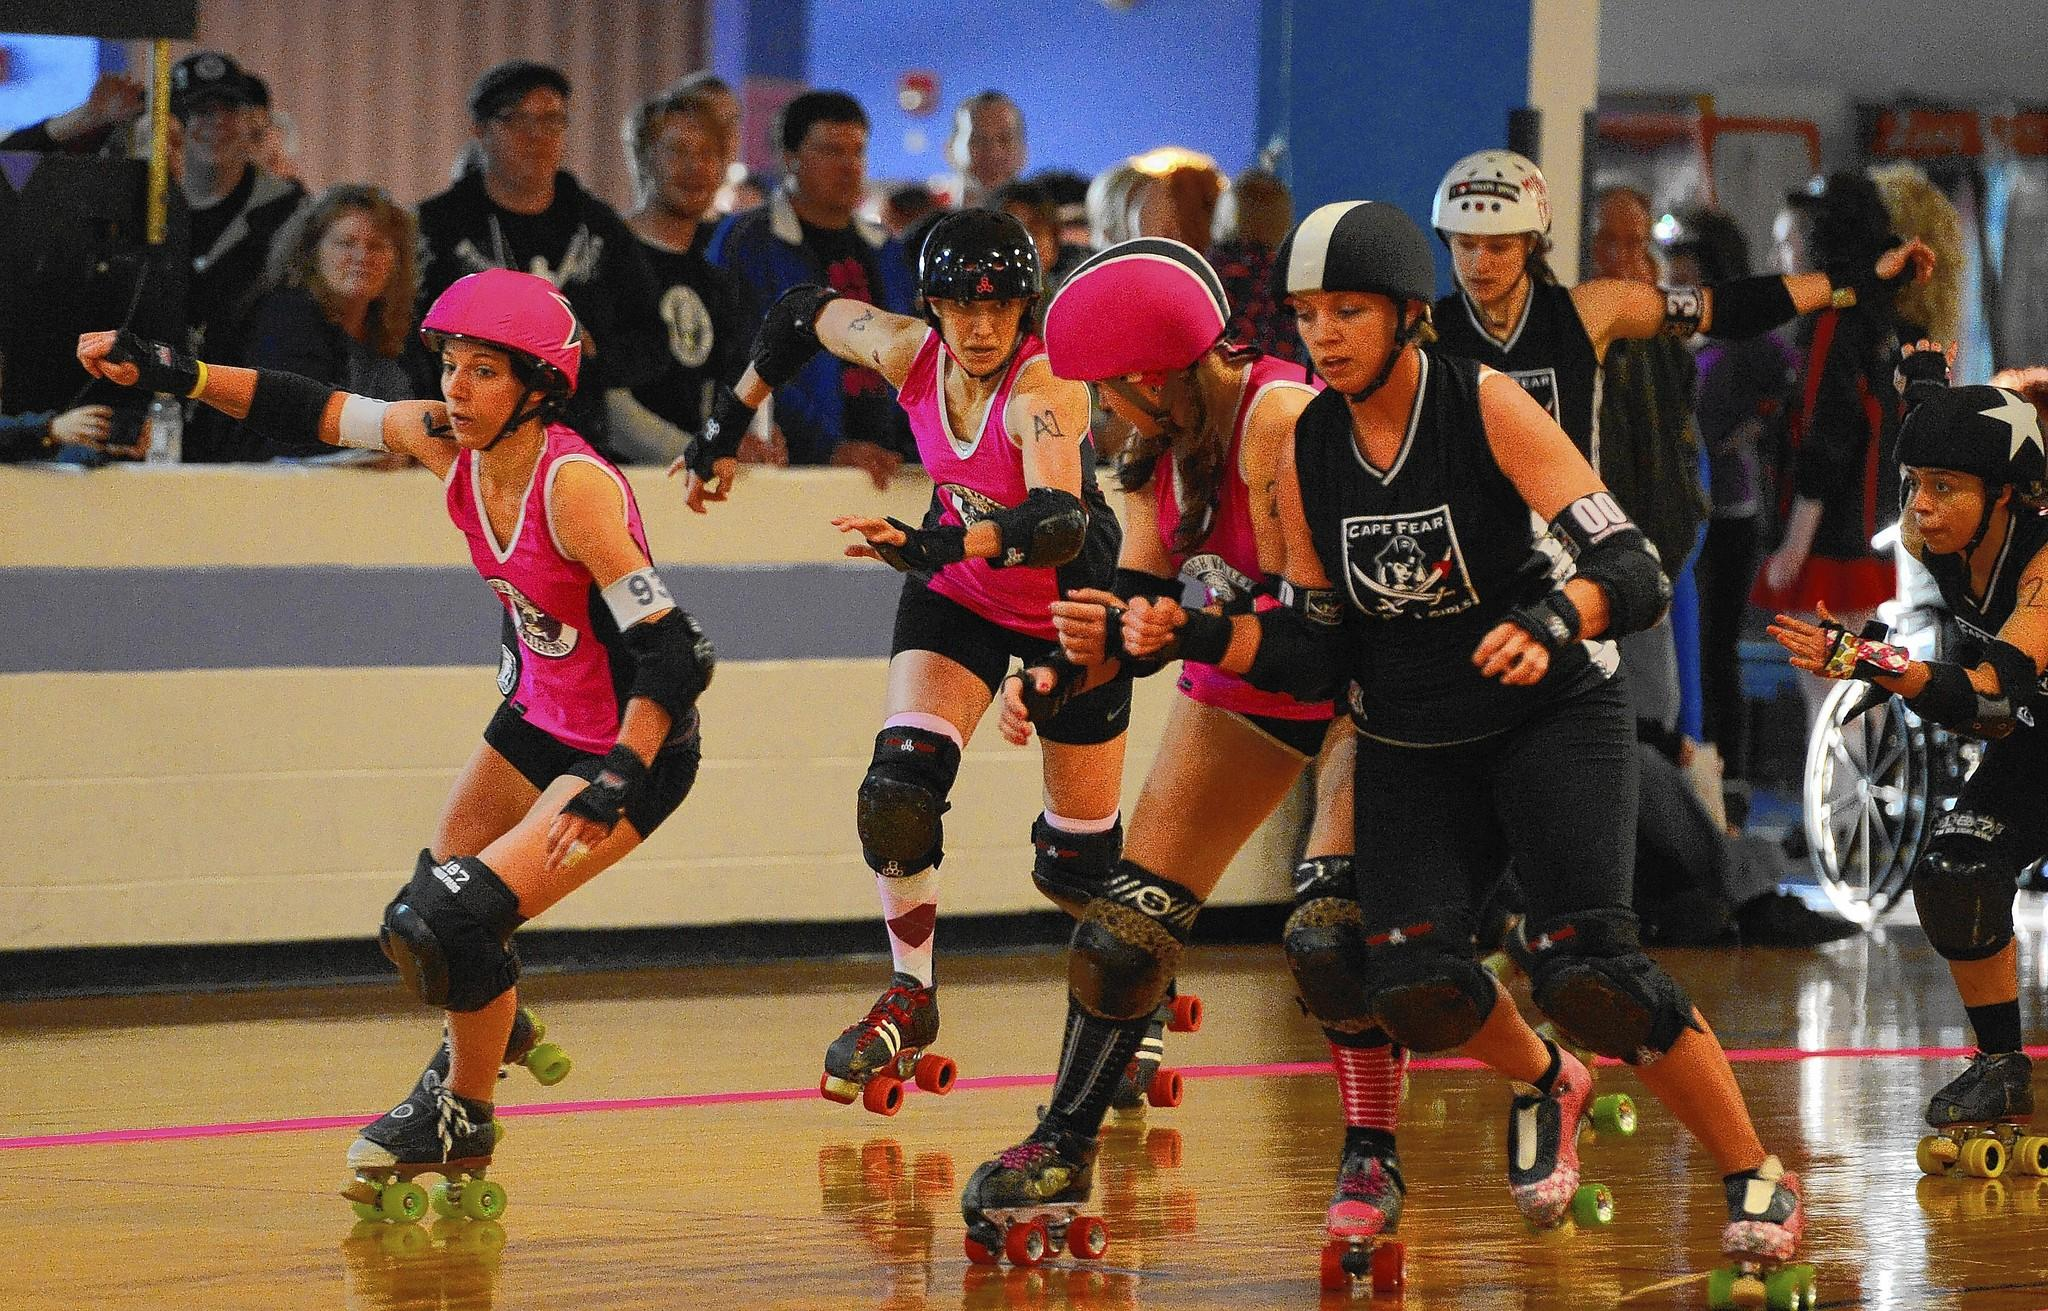 Lehigh Valley Rollergirls MJ Slamber (front) gets out in front during a match against the Cape Fear Roller Girls held at Independence Family Fun Center on March 23.